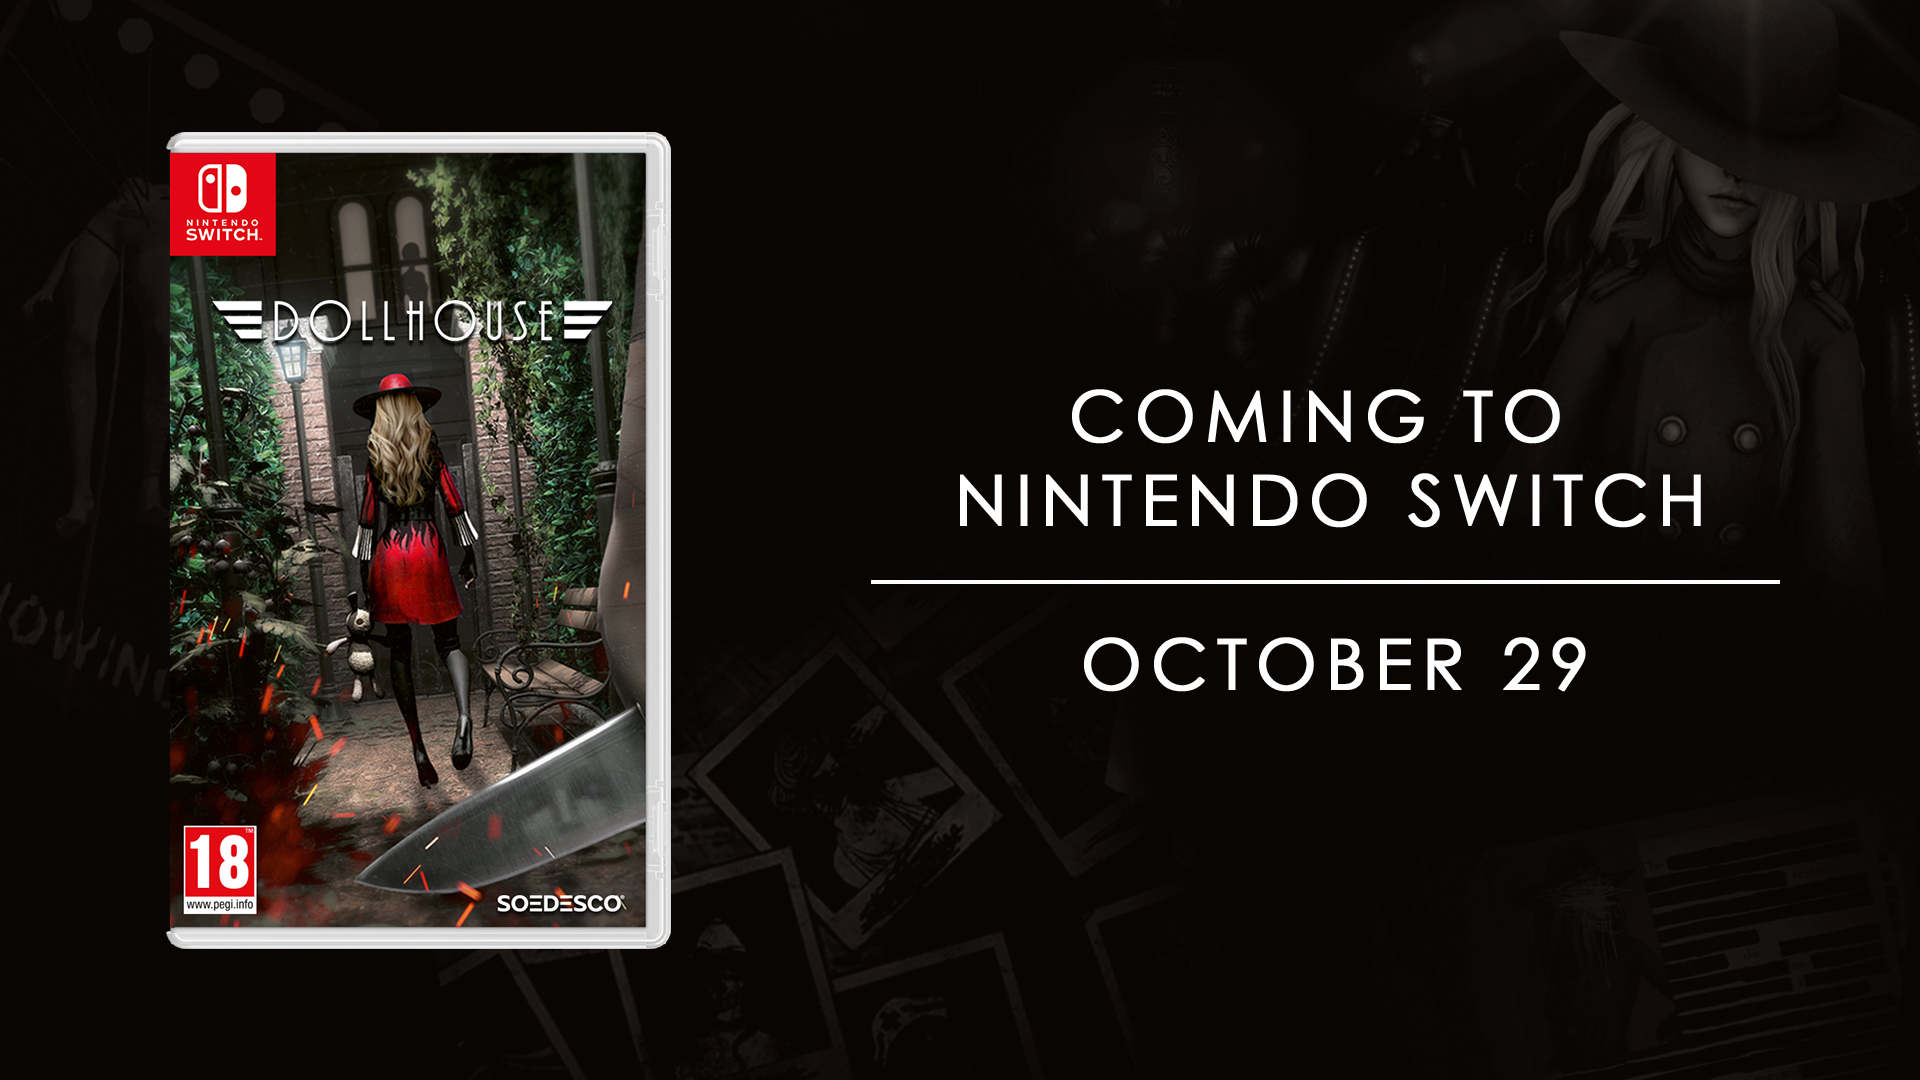 Let the chase begin: Dollhouse to launch on October 29 on Nintendo Switch